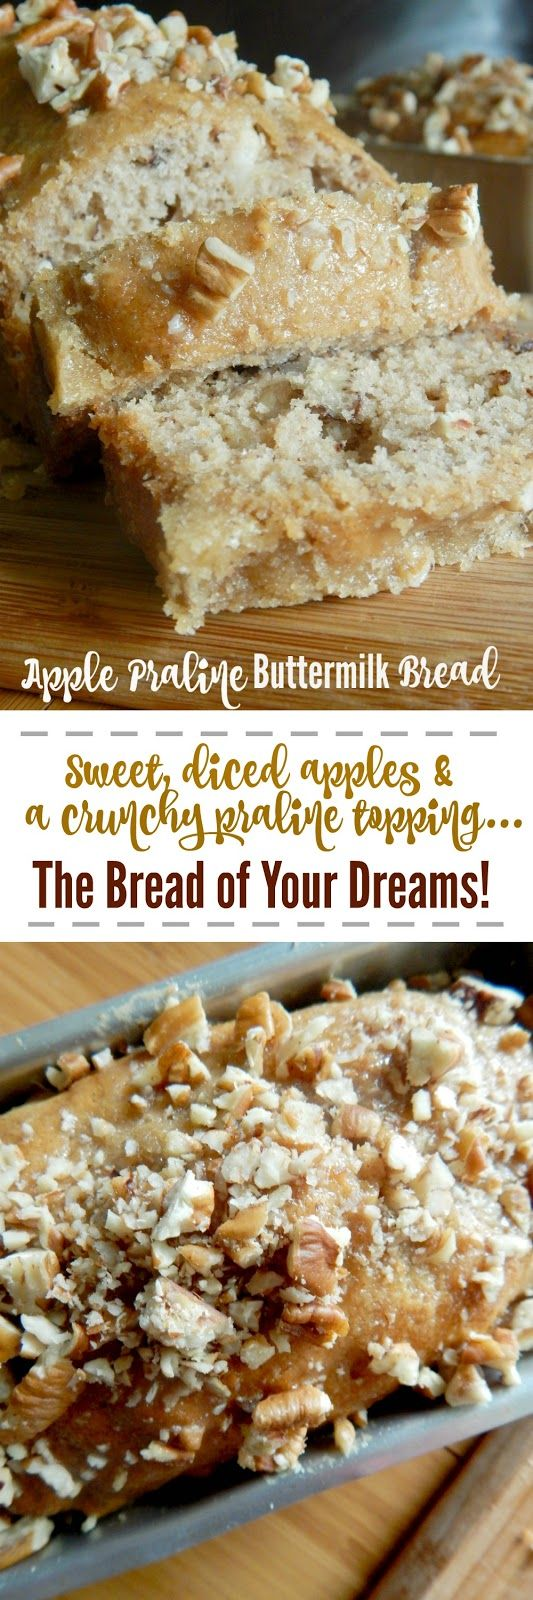 Apple Praline Buttermilk Bread This Sweet Bread Gets Even Better When You Pour The Hot Praline Topping Over The Fini Buttermilk Bread Food Delicious Desserts